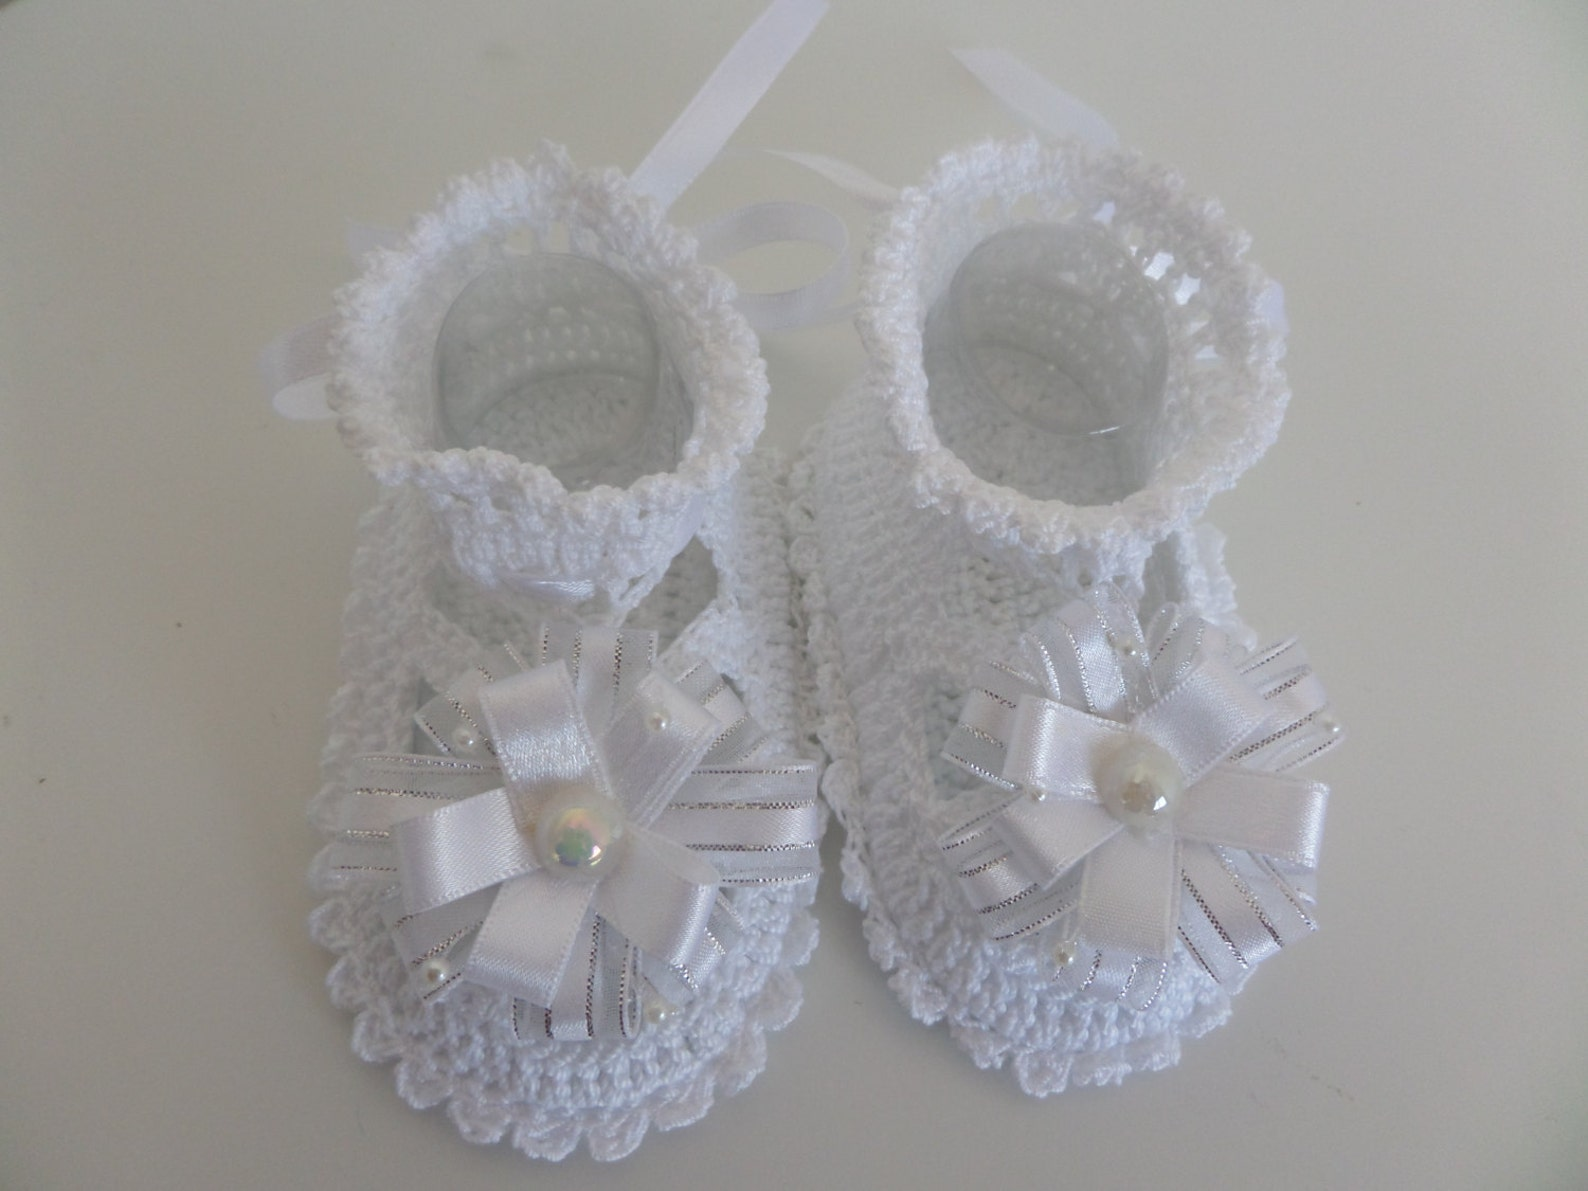 crochet baby booties, baby girl ballet slippers with flowers. crochet baby shoes for newborn to 06 months.